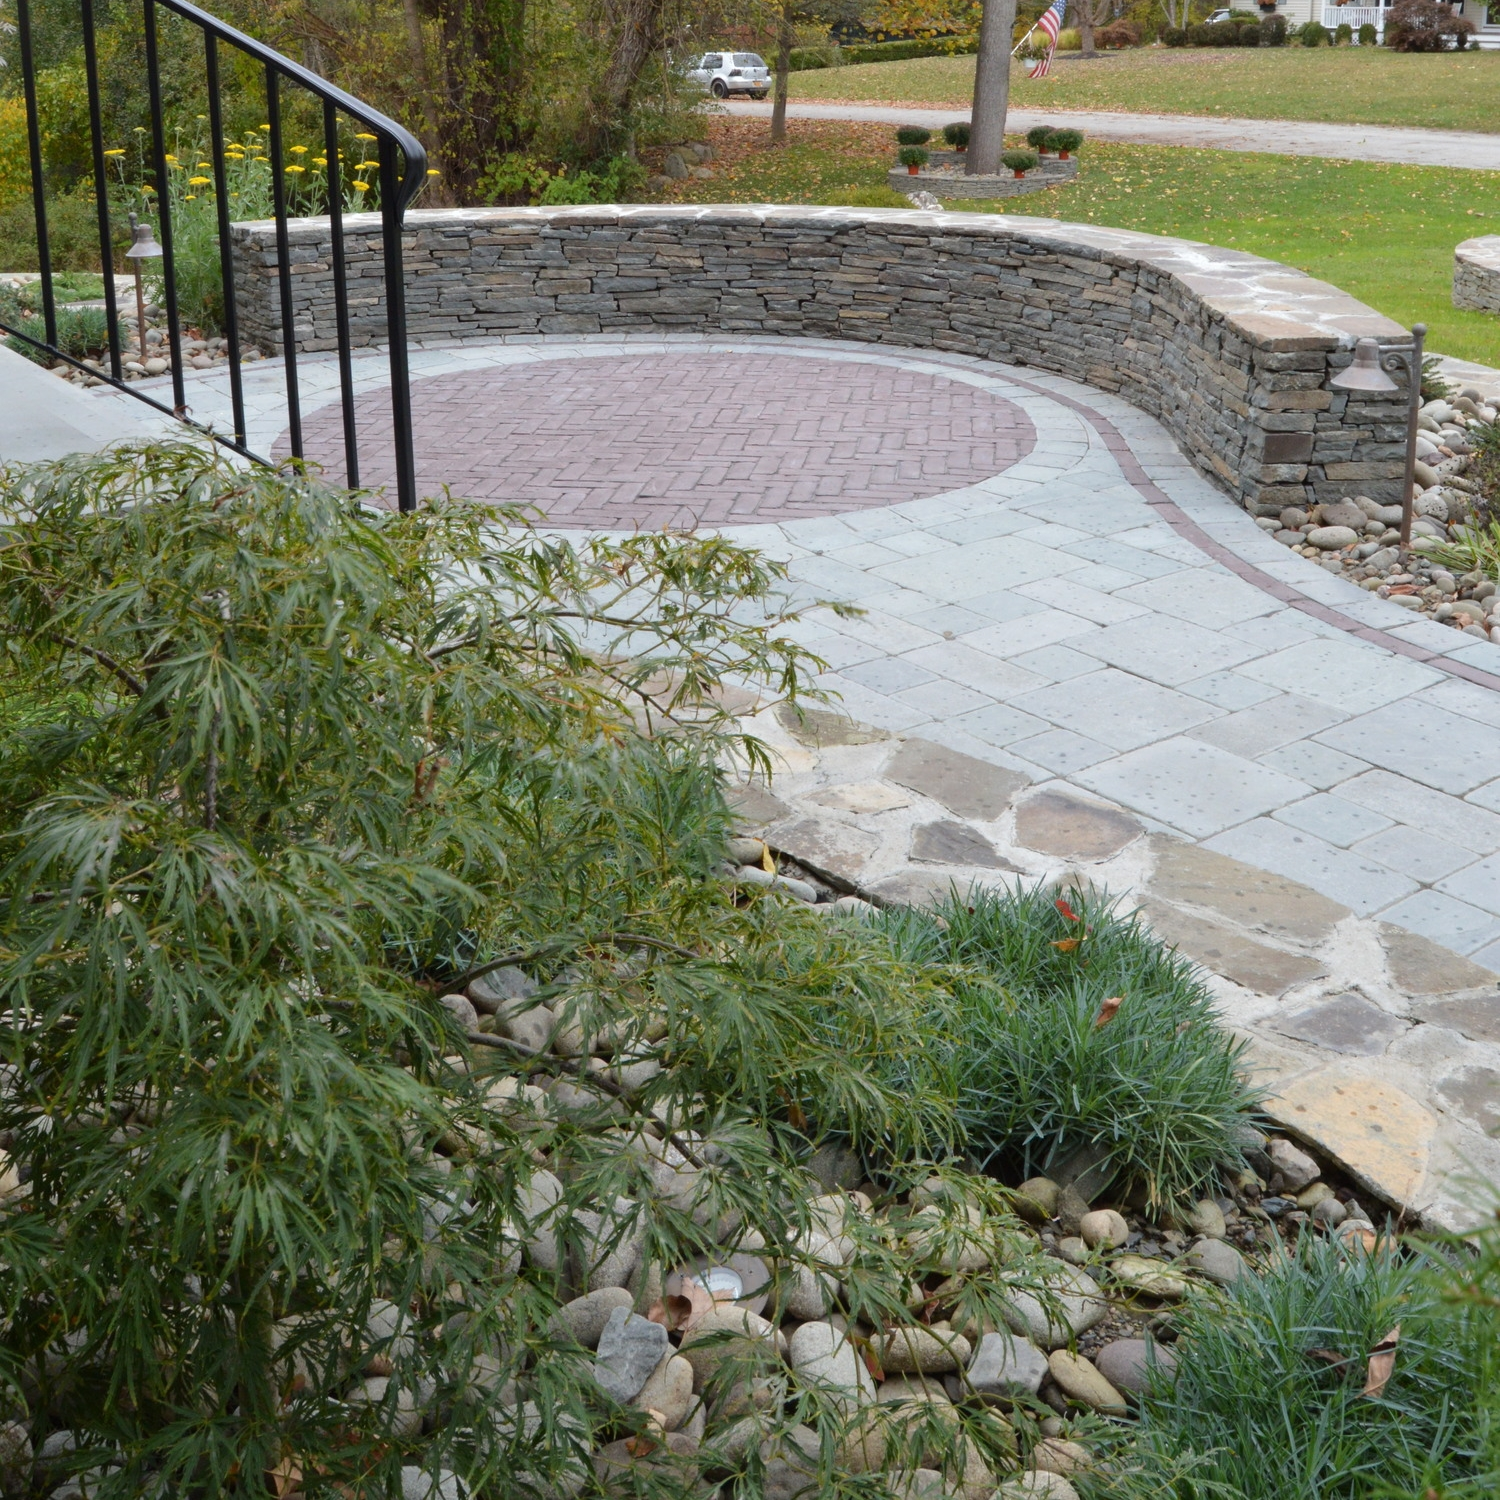 This Landworx project is located in Orange County, NY region of the Hudson Valley.  The design includes the masterful use of natural stone walls and real bluestone pavers, with colorful accents made from Copthorne—a concrete paver from Unilock's Select line.